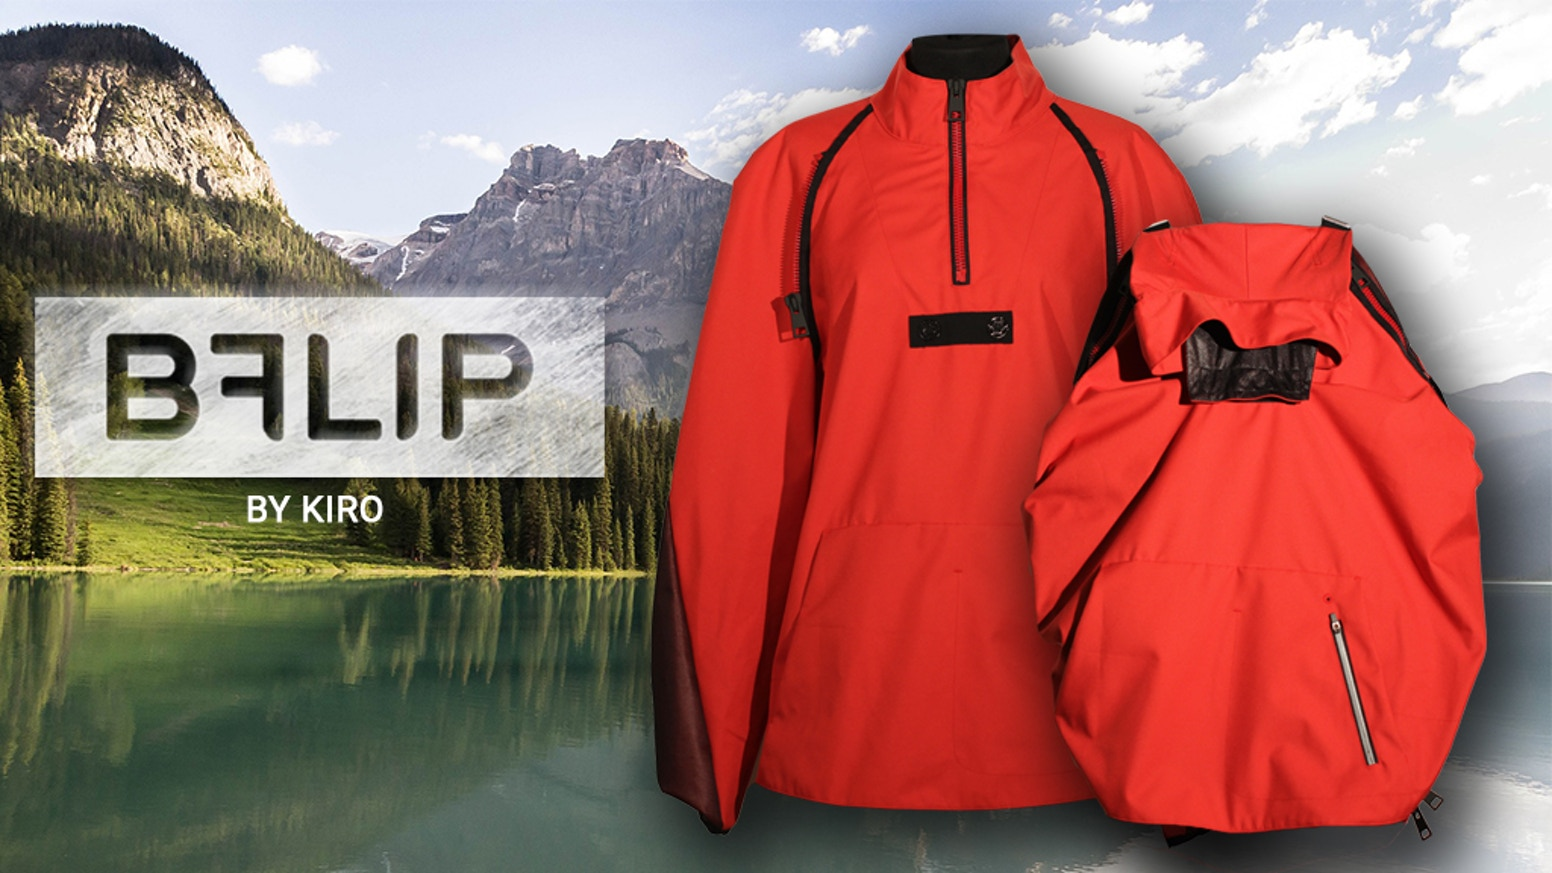 Jacket Backpack Bflip The Made In Italy Jacket That Feels Like A Backpack By